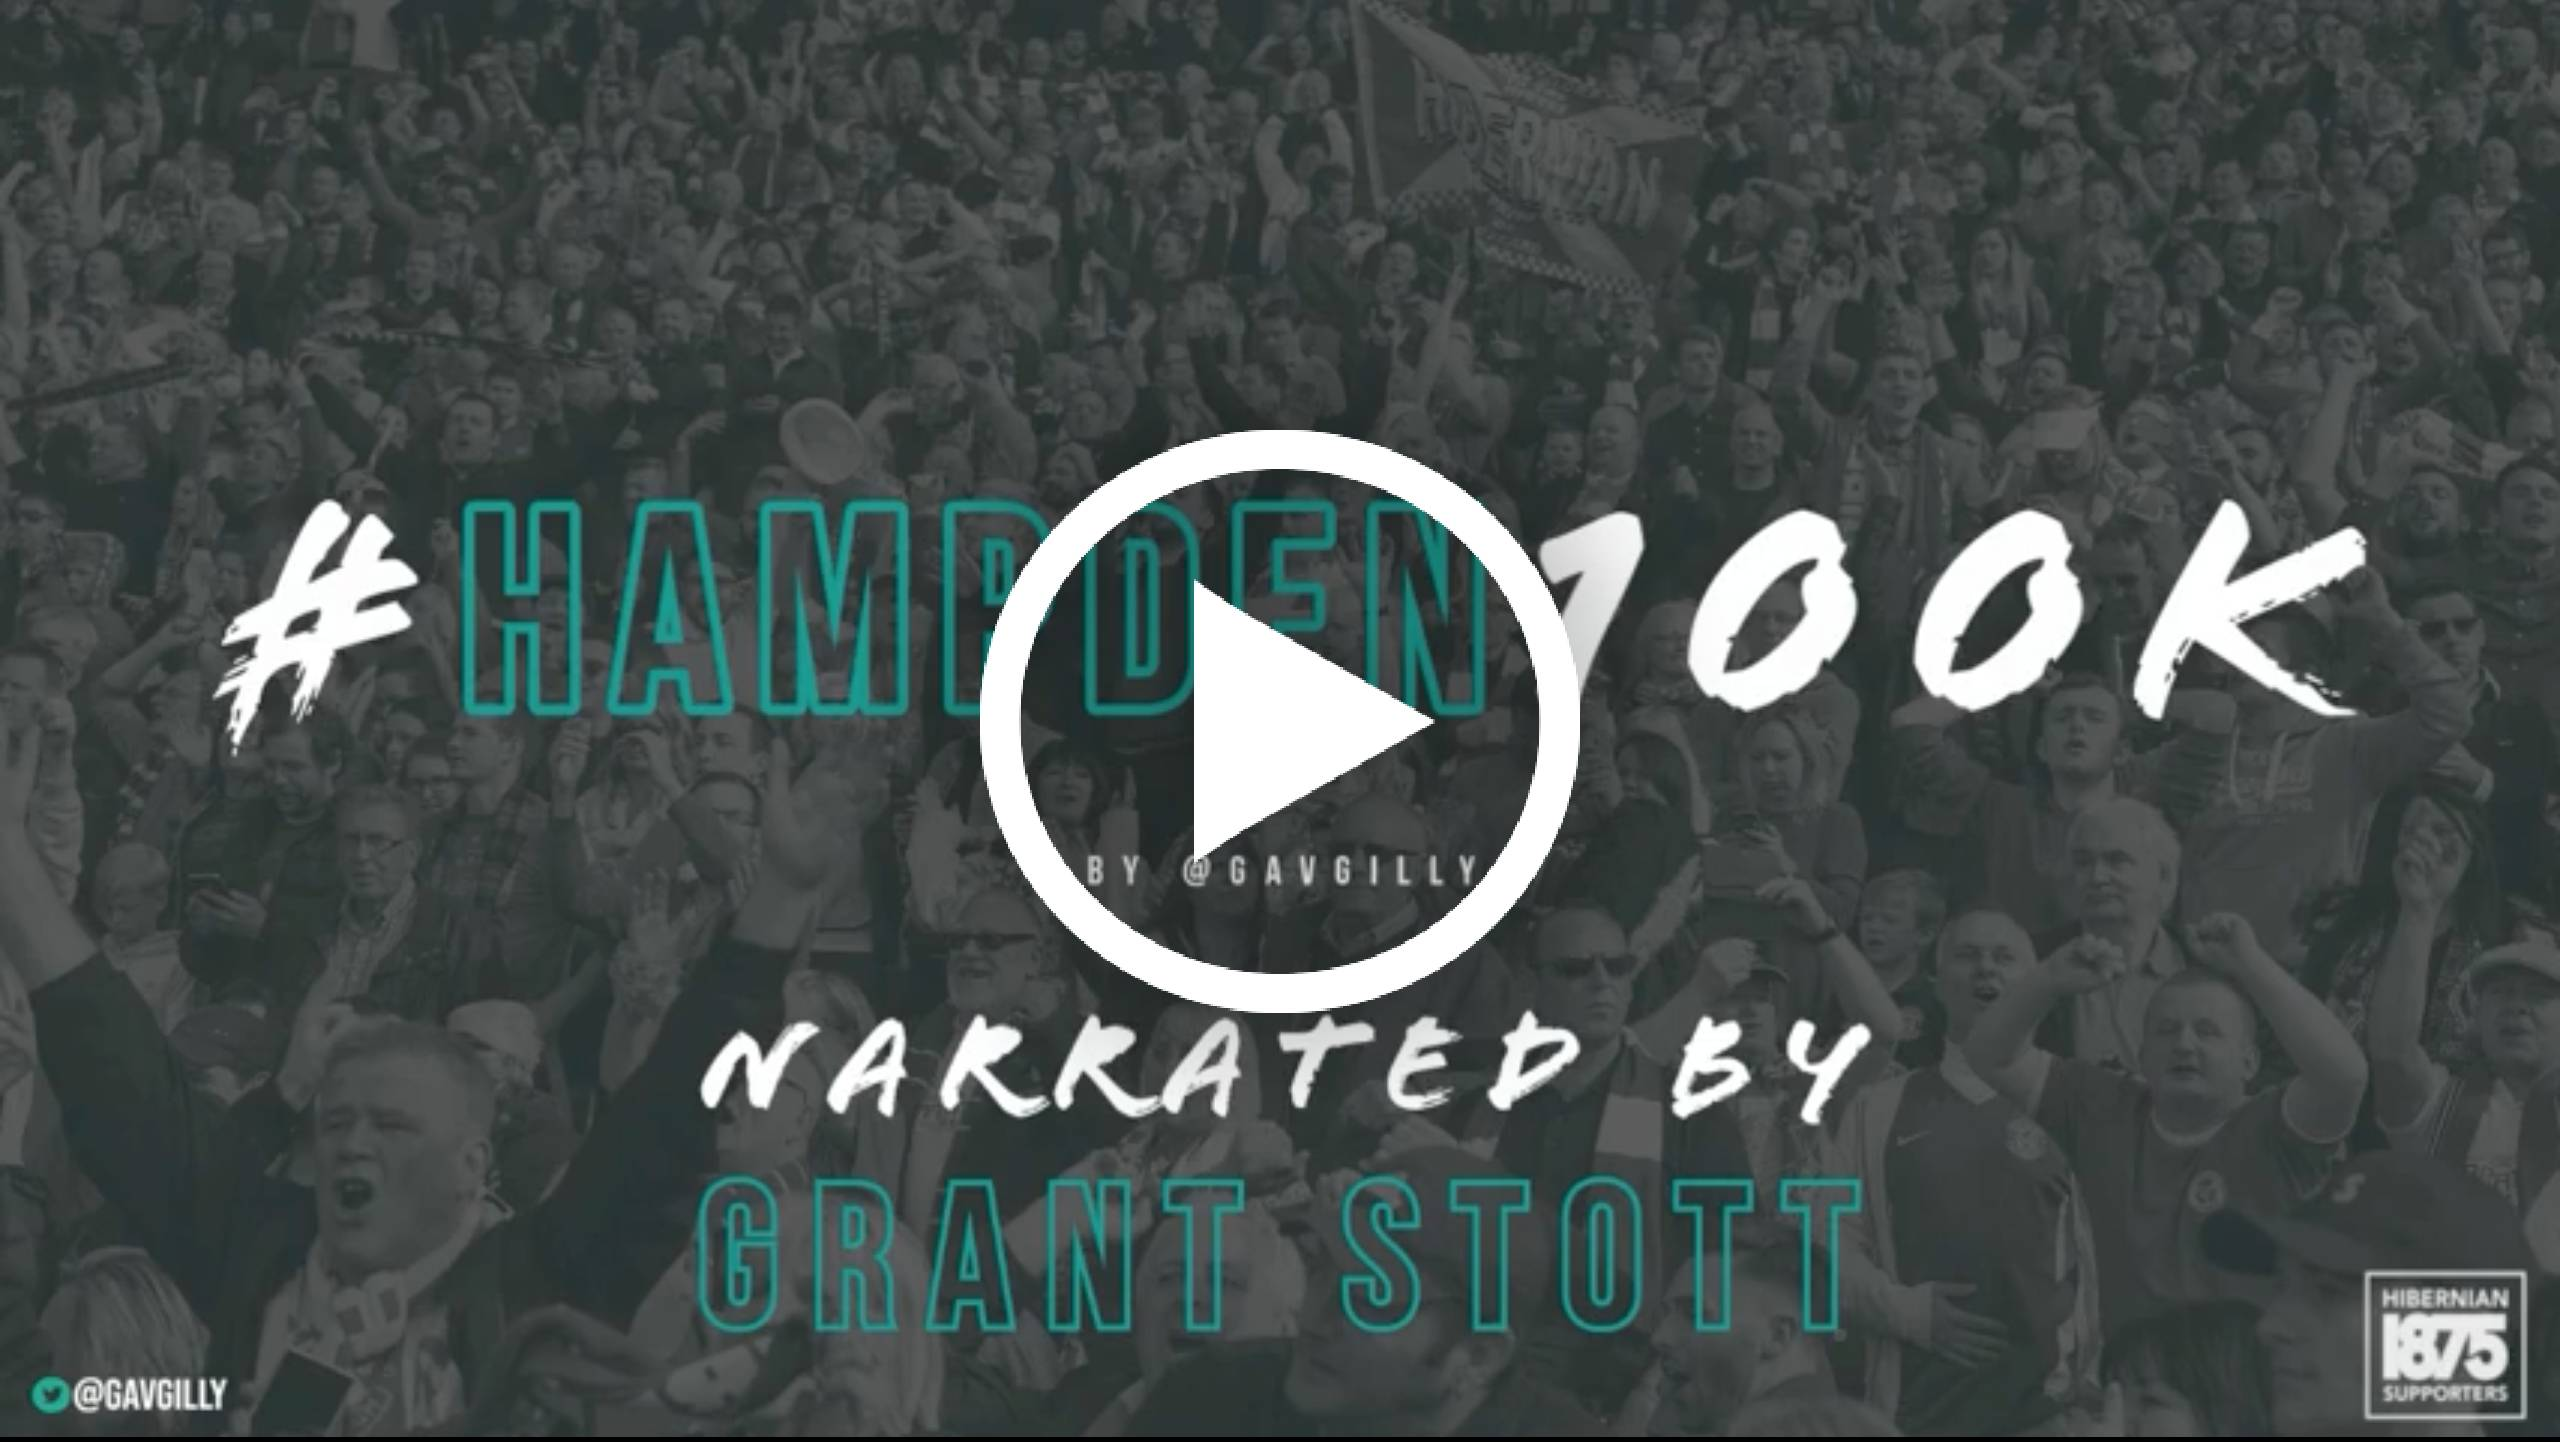 https://hiberniansupporters.co.uk/grant-stott-backs-hampden100k-campaign/